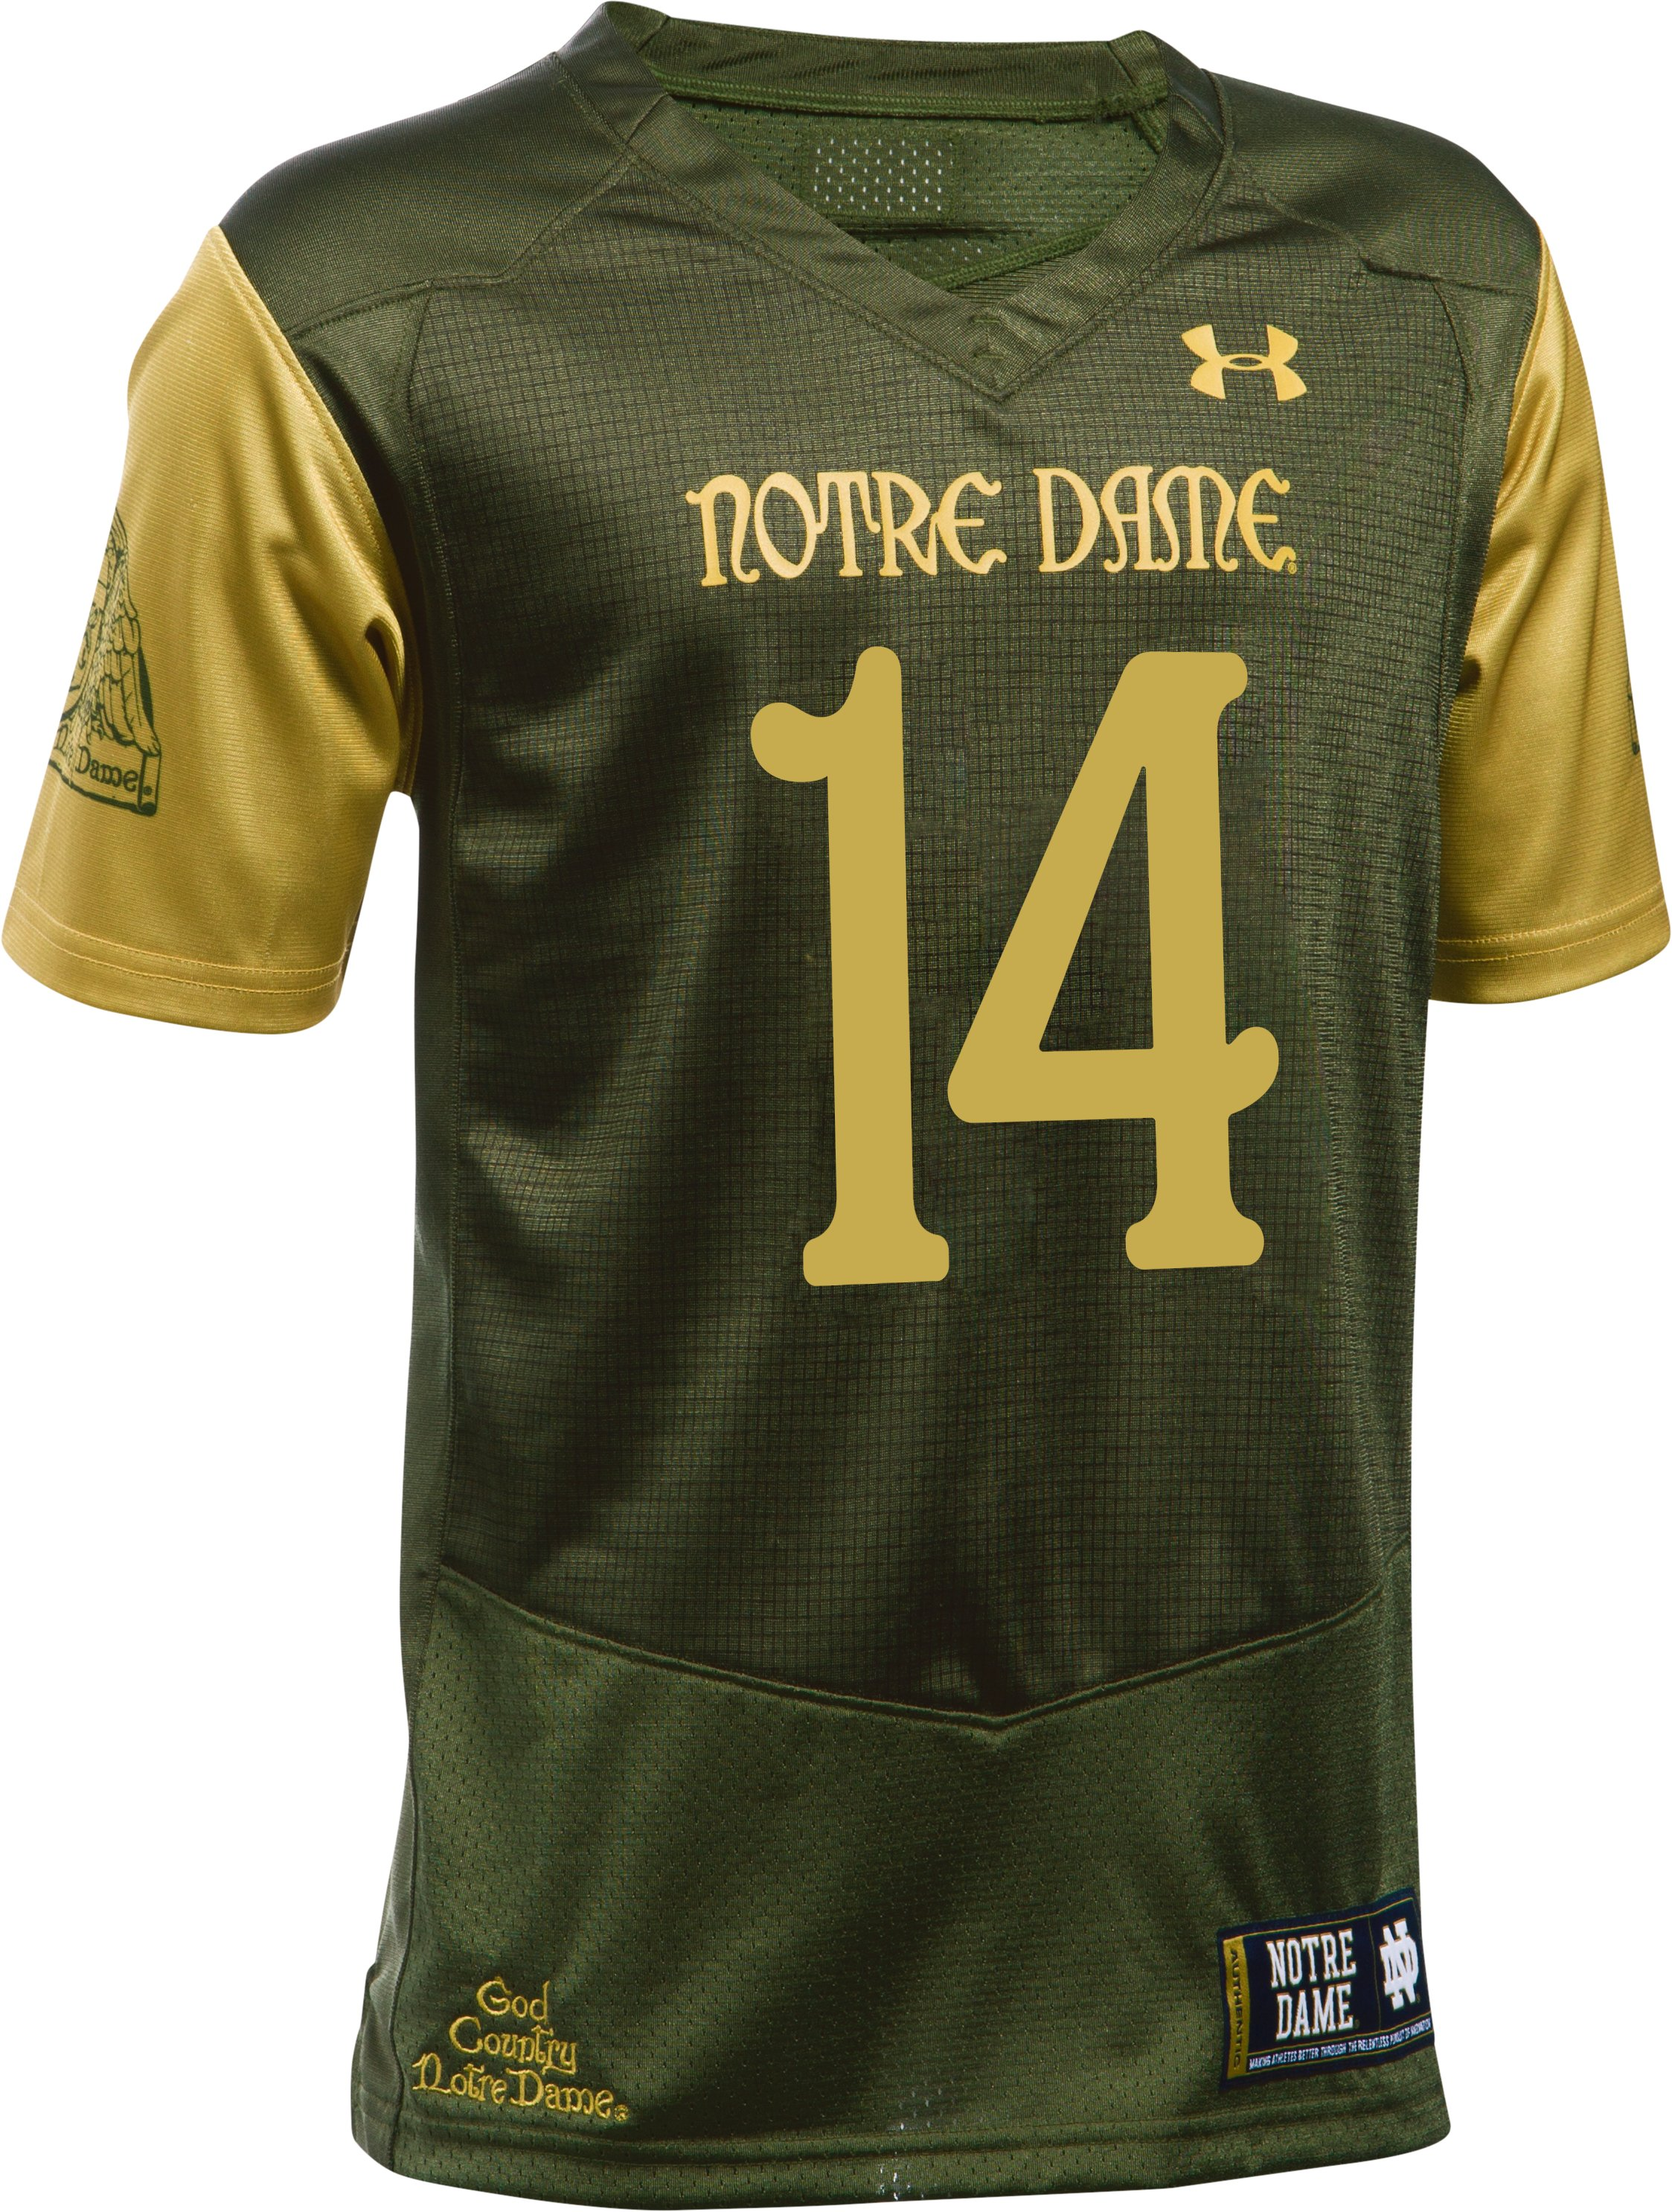 Kids' Notre Dame Shamrock Series UA Replica Football Jersey, Root